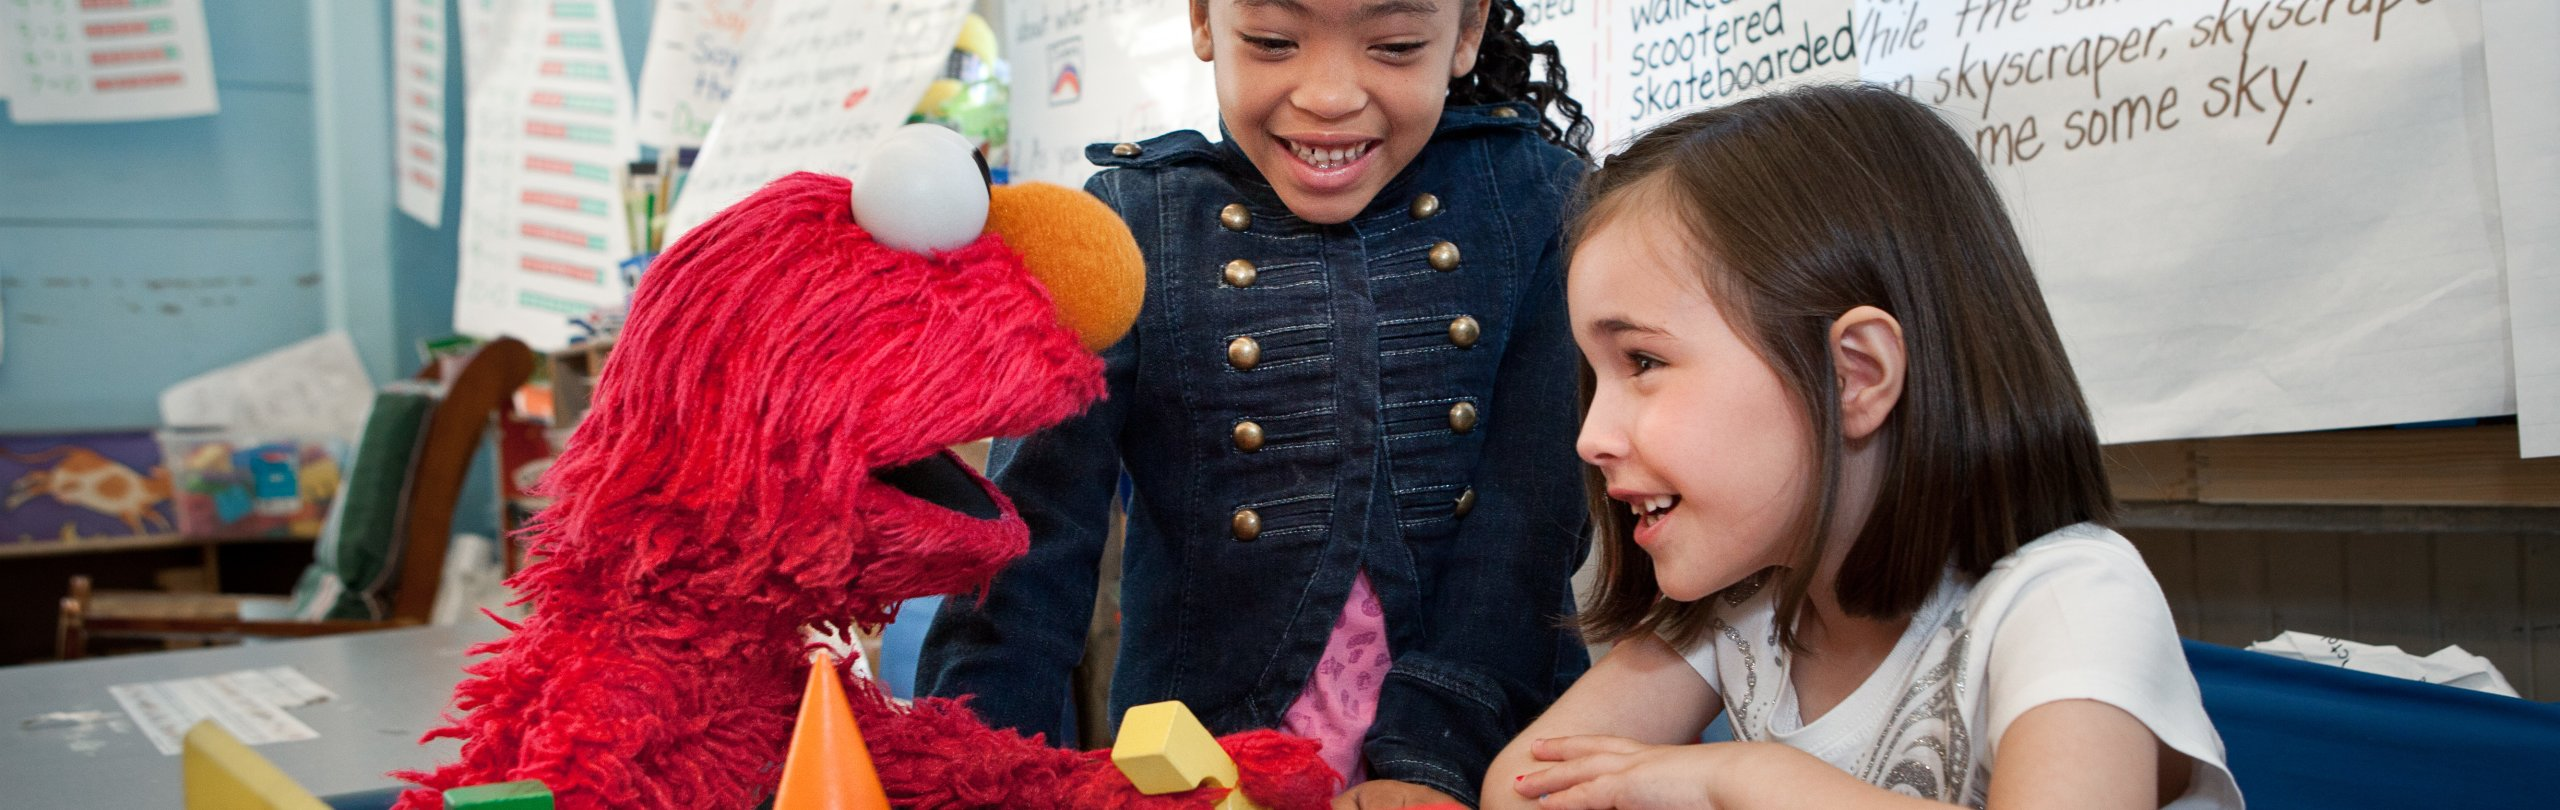 Elmo plays with blocks with two young girls